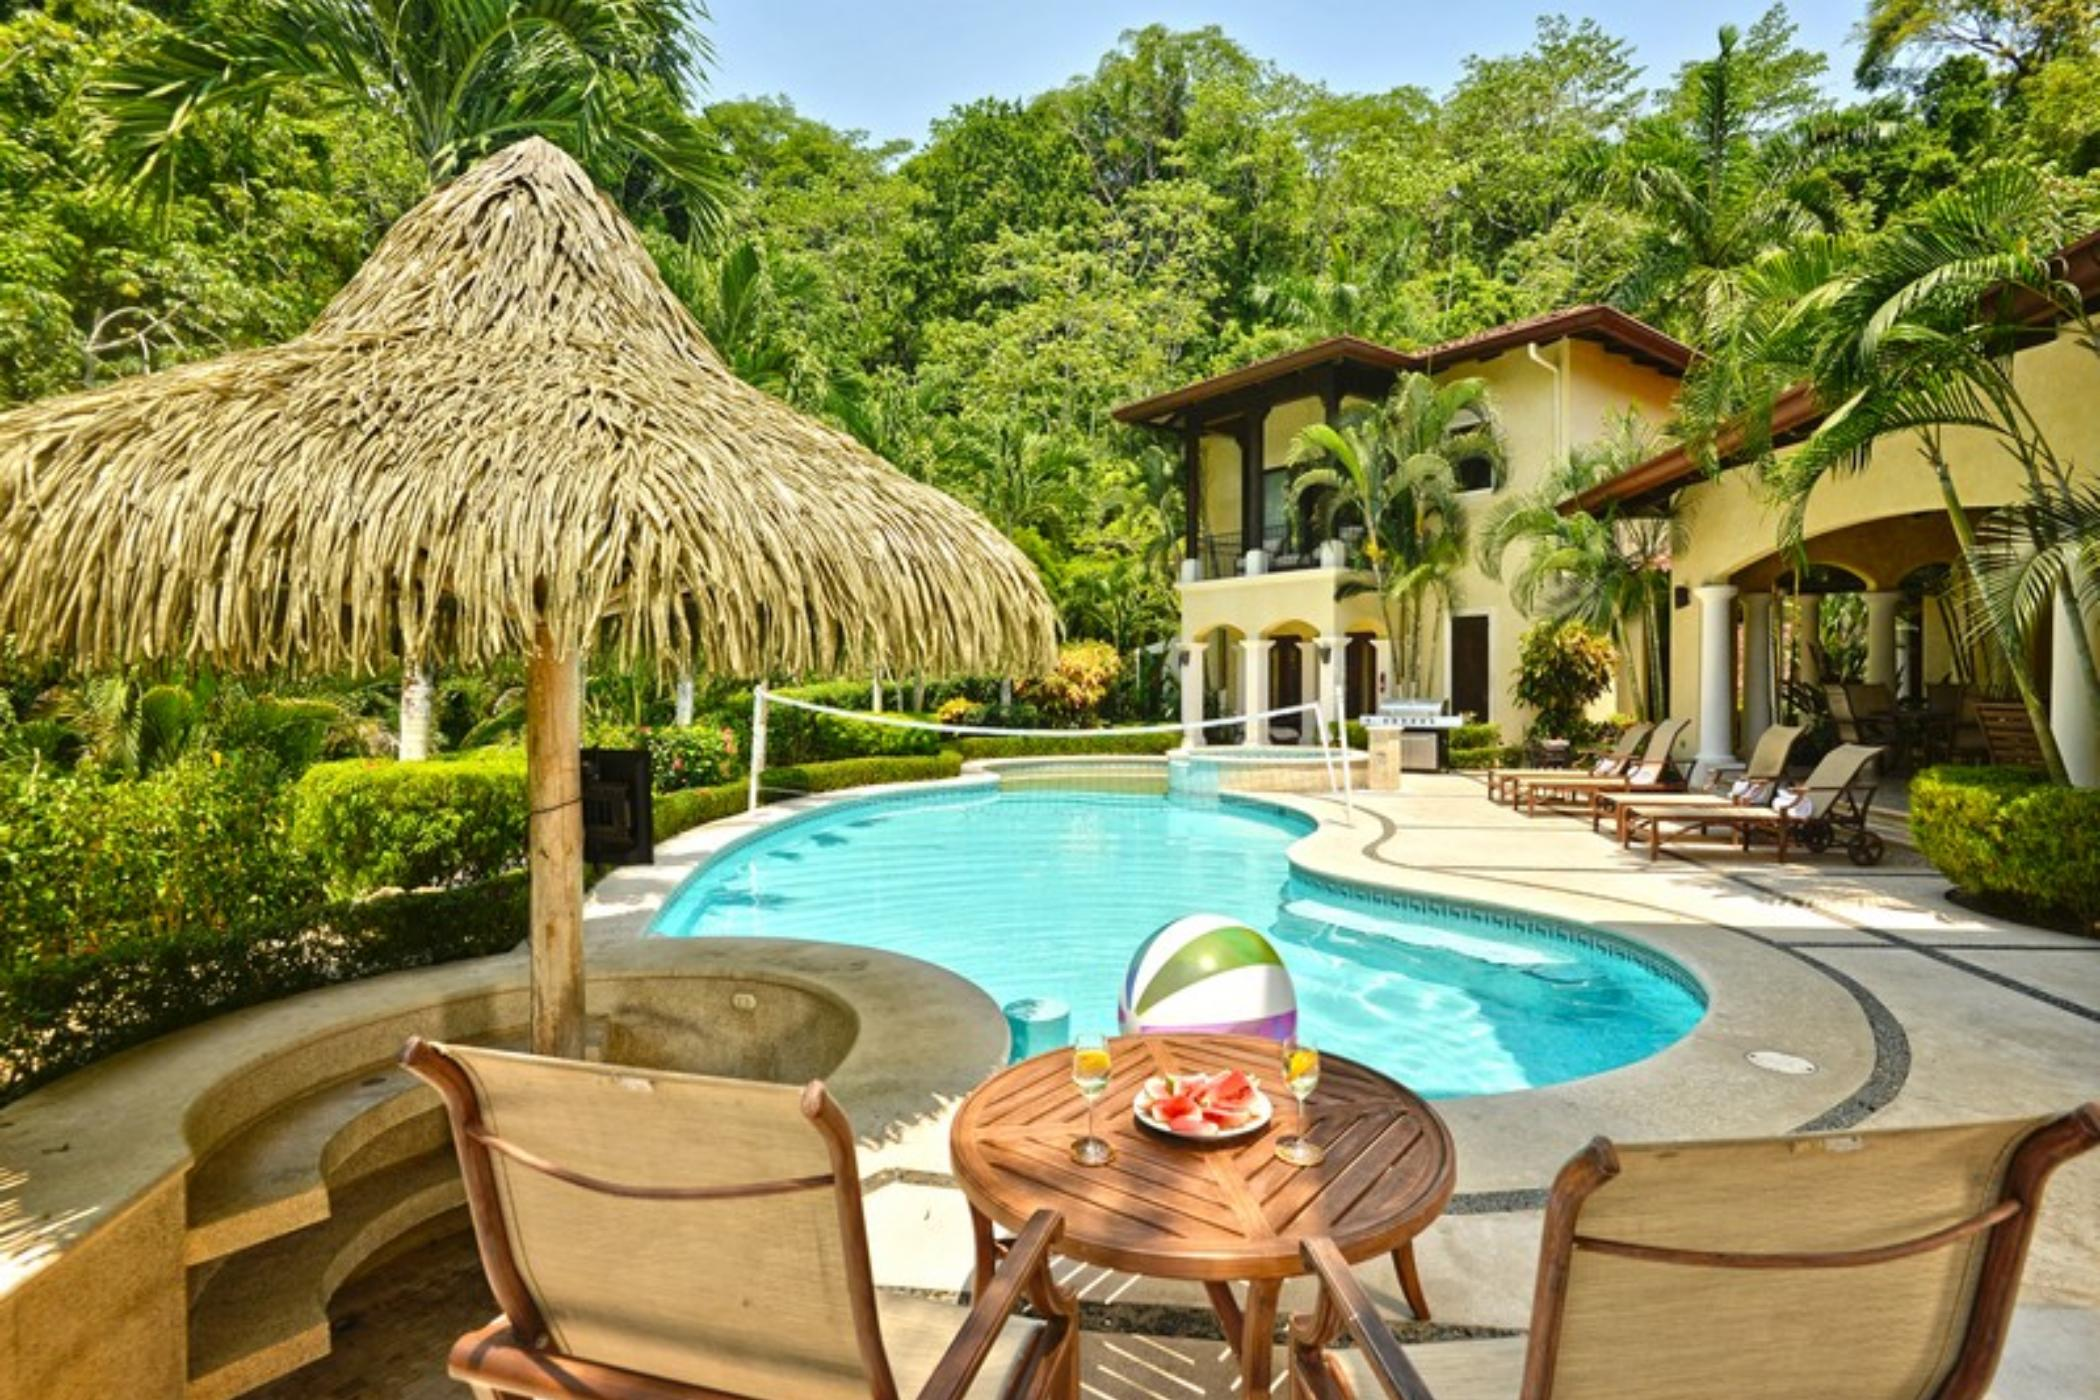 Casa Tropical - CR